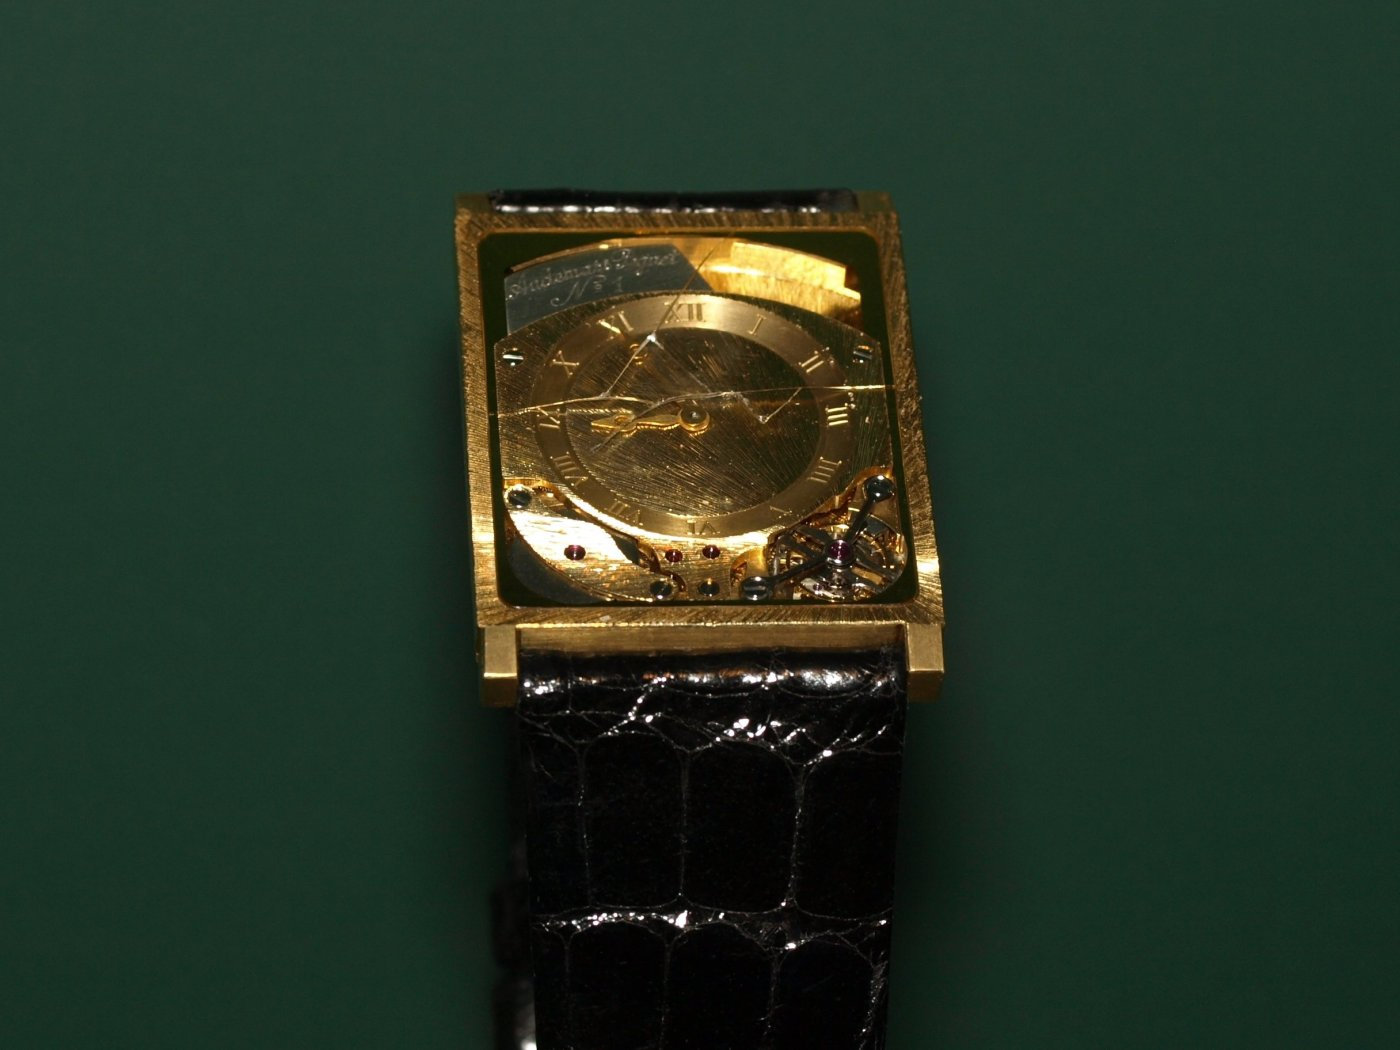 The world's first tourbillon wristwatch on display at AP Museum